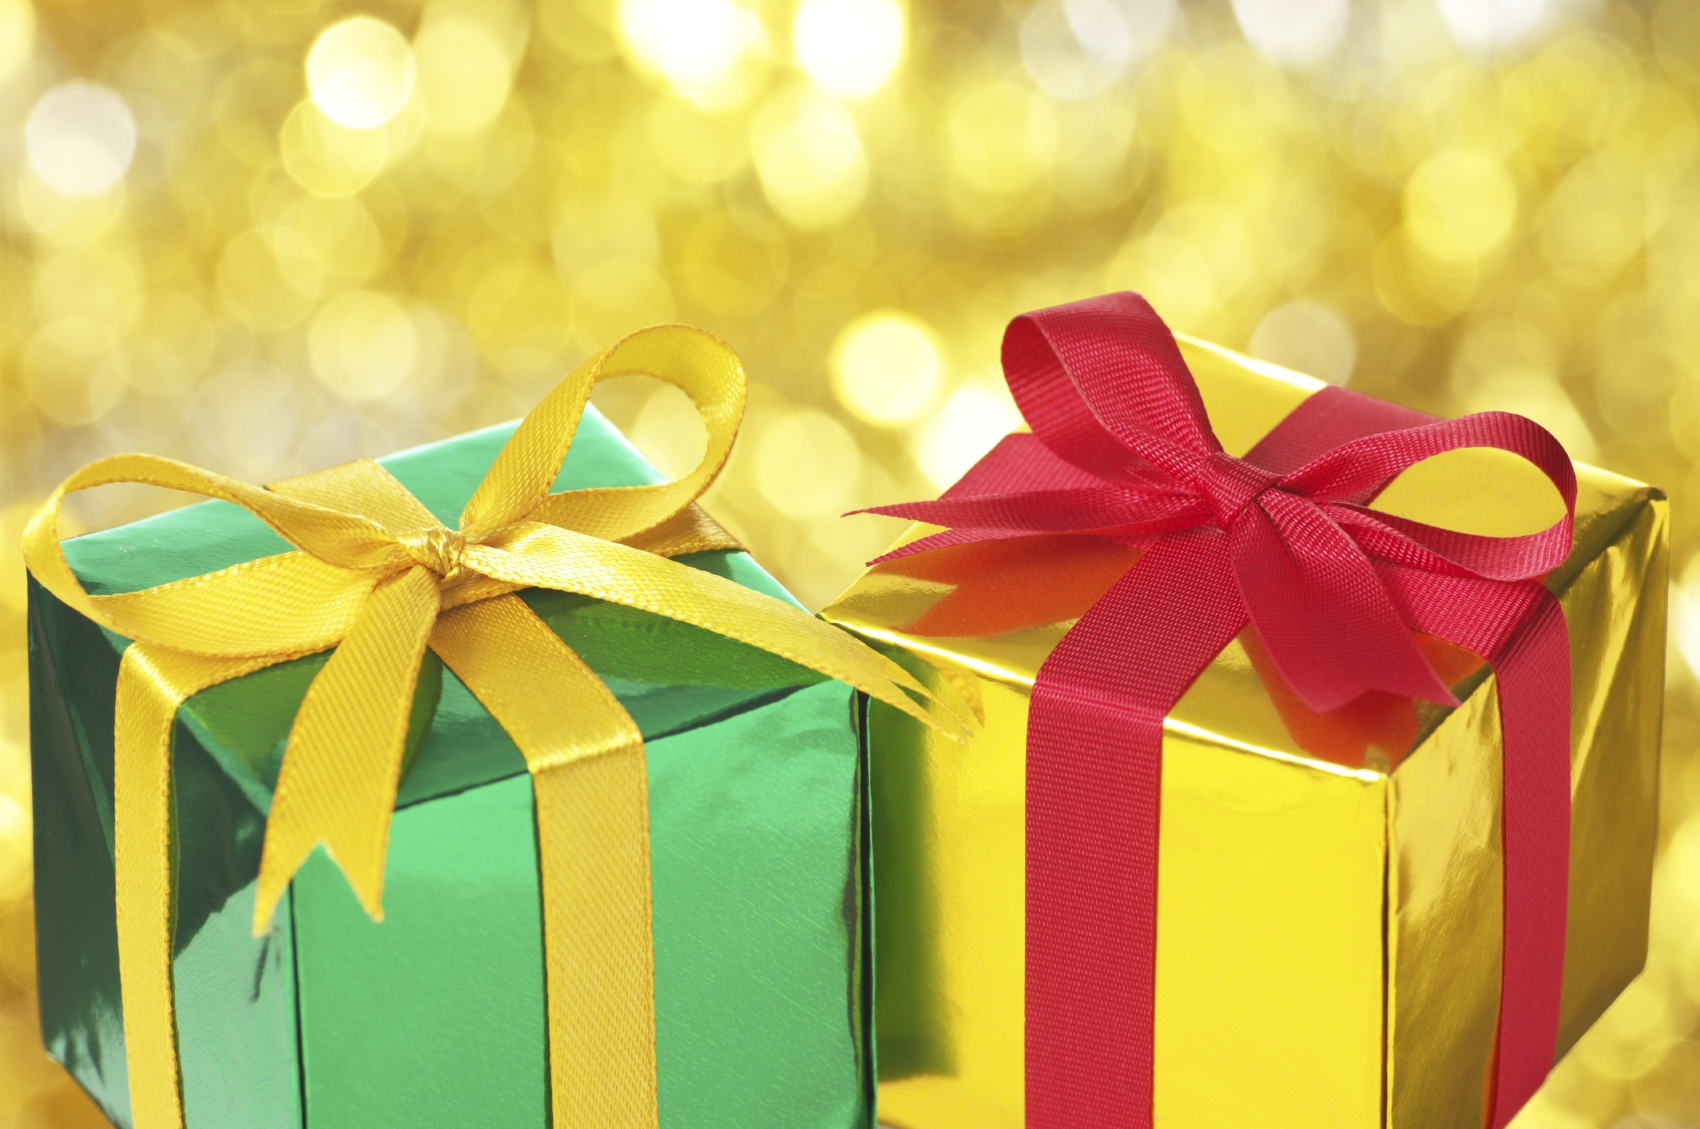 Gift ideas and deals for the holidays diycontrols blog for Gift ideas for craft lovers